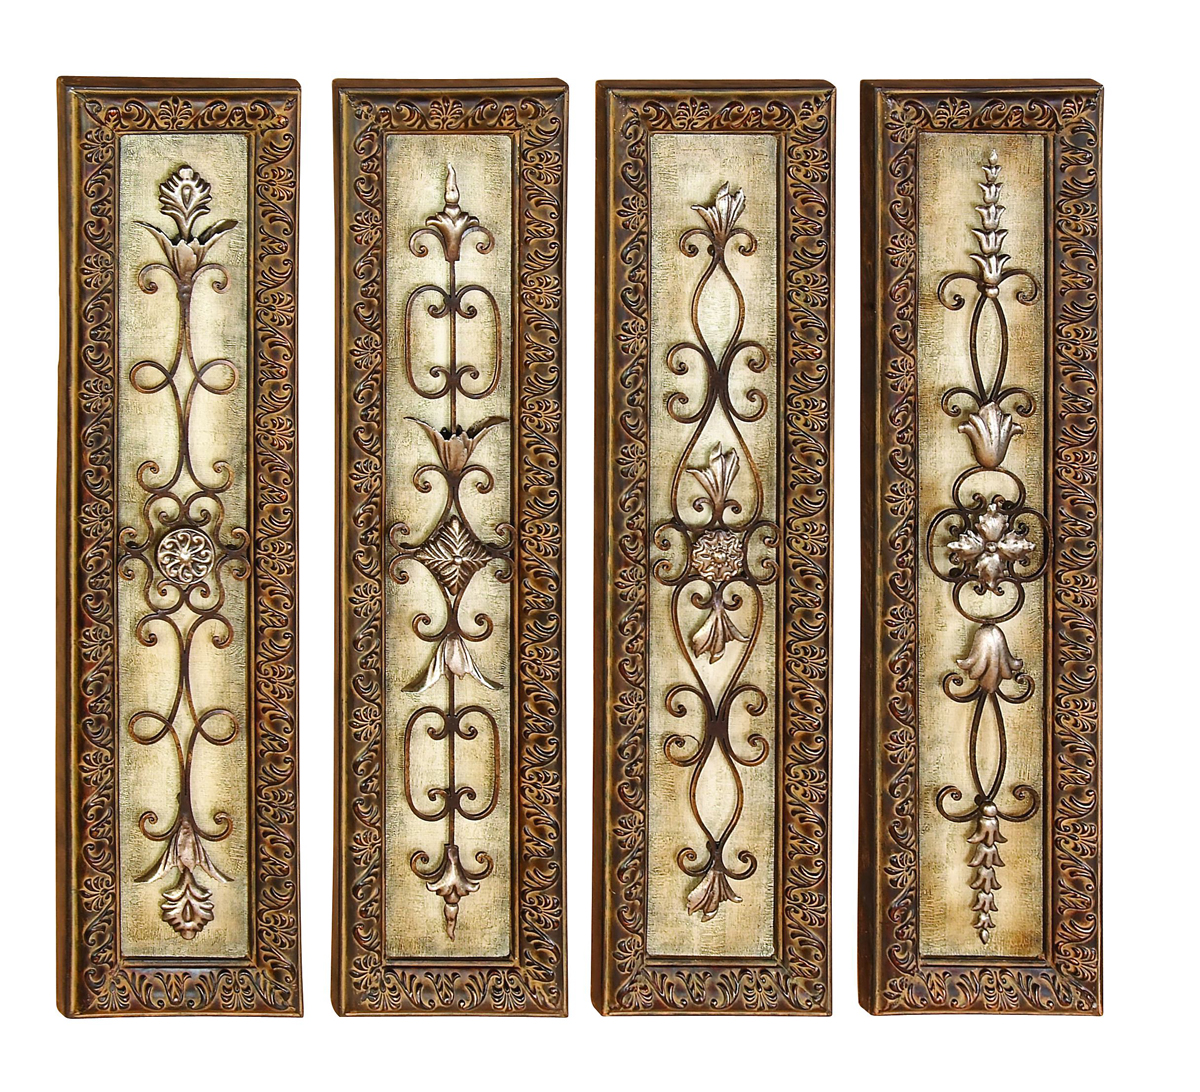 Wall Art Metal Panels : Scrolls of elegance wall panels set